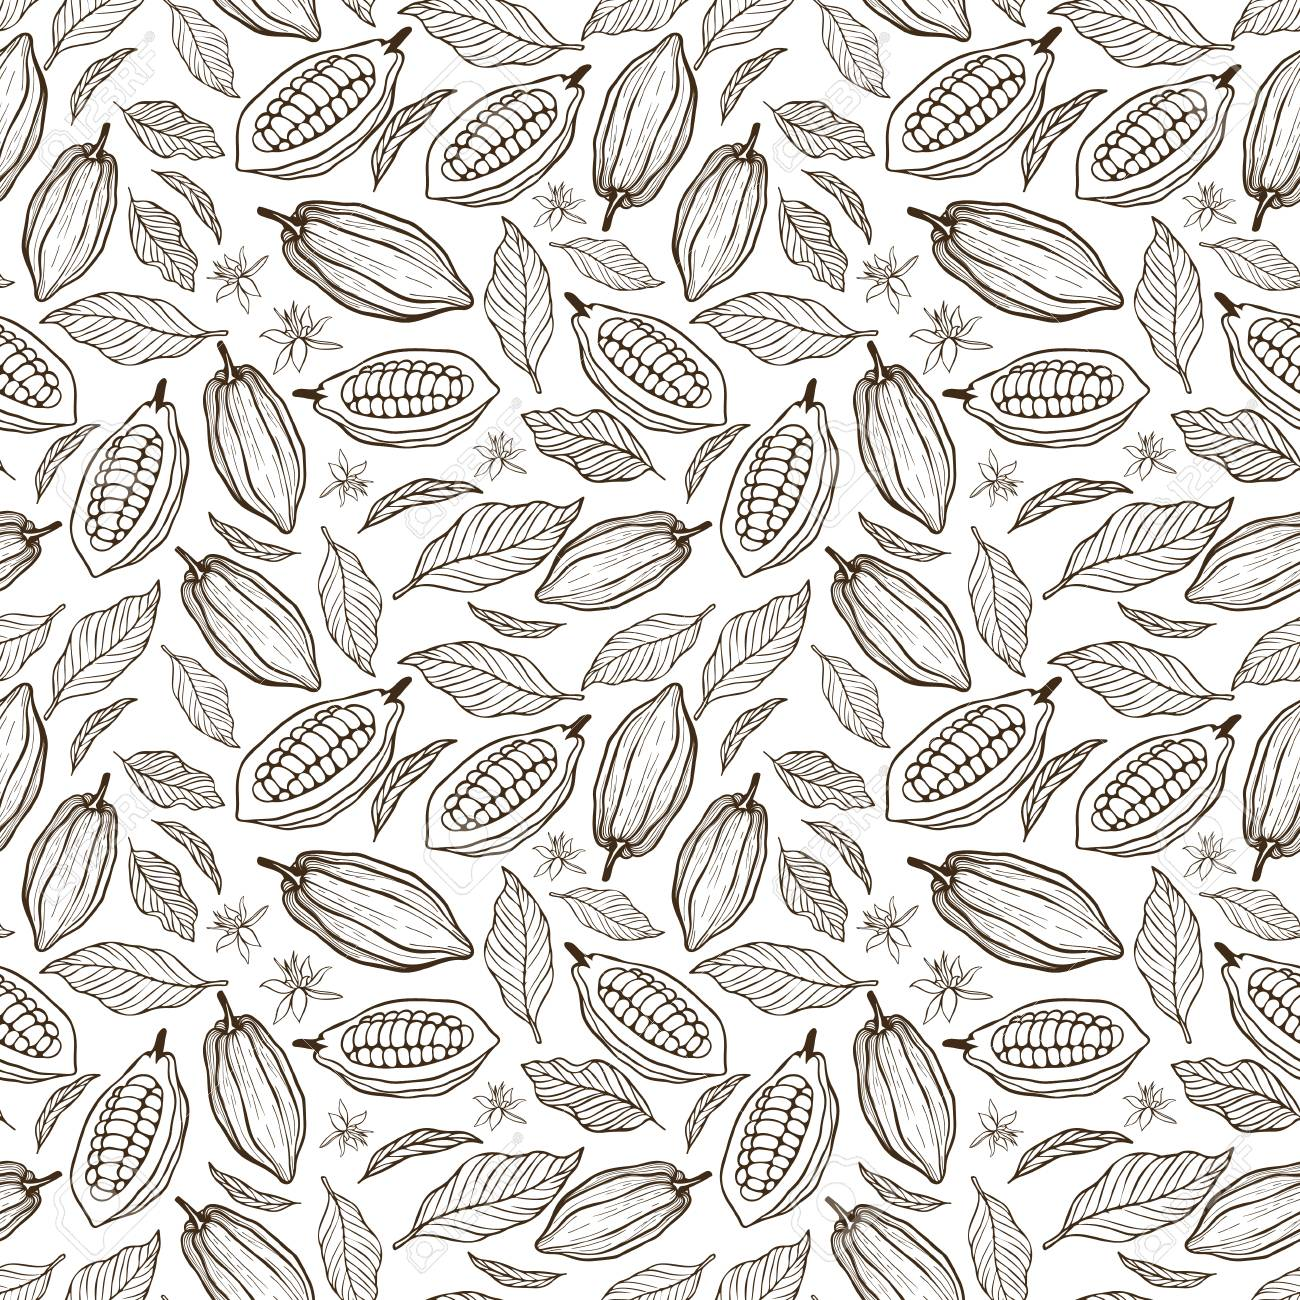 Cacao beans seamless pattern. - 94644842